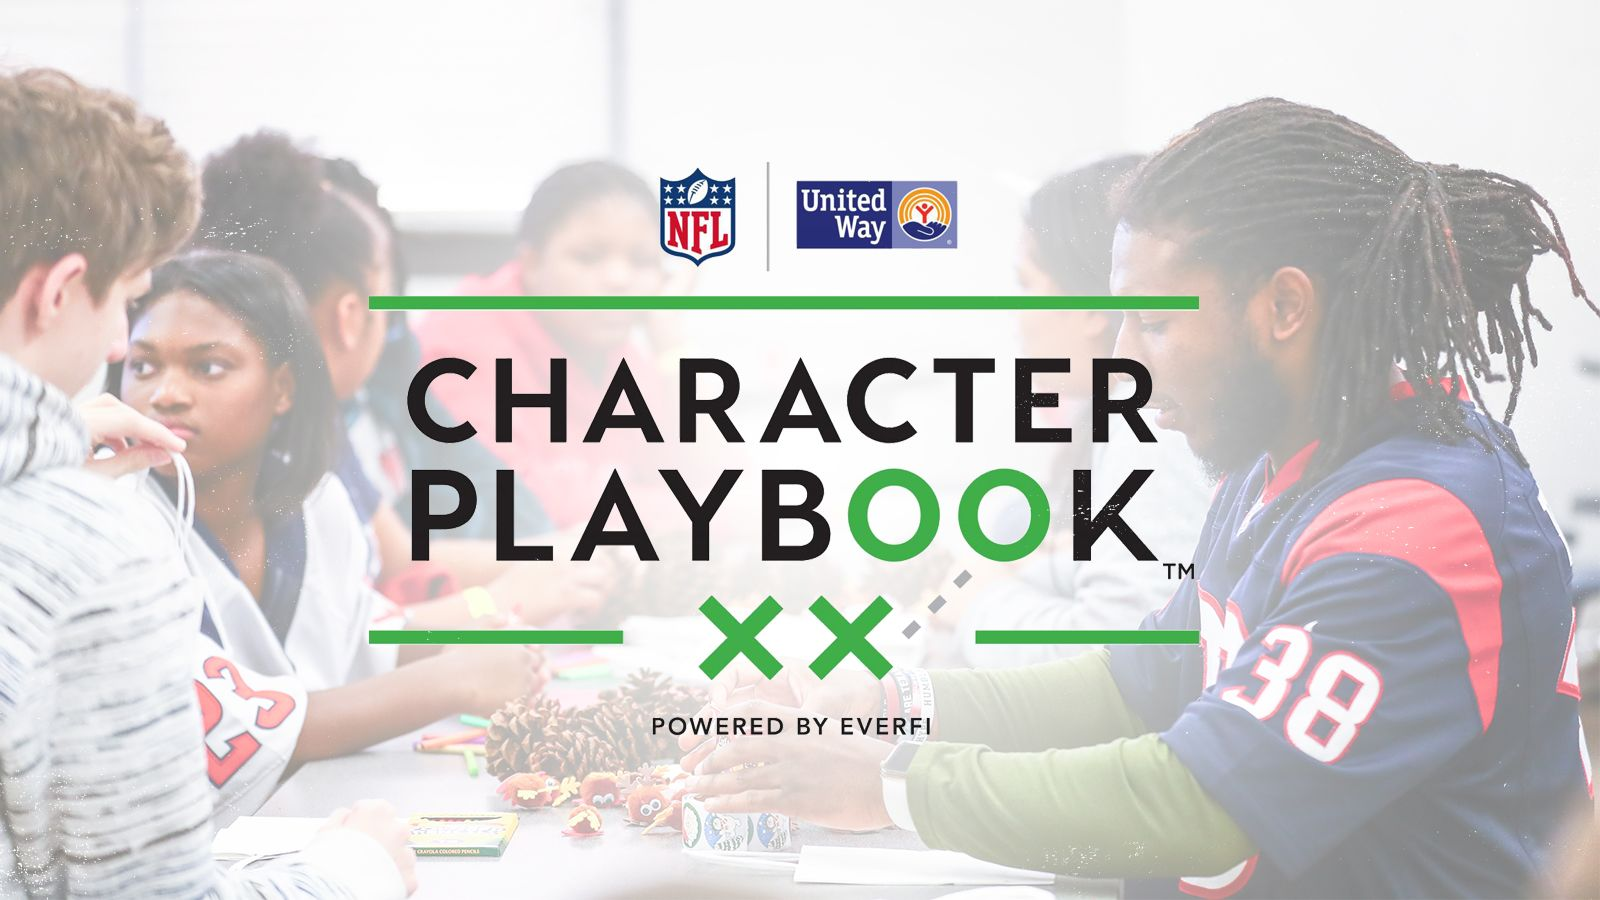 NFL  Character Playbook presented by United Way